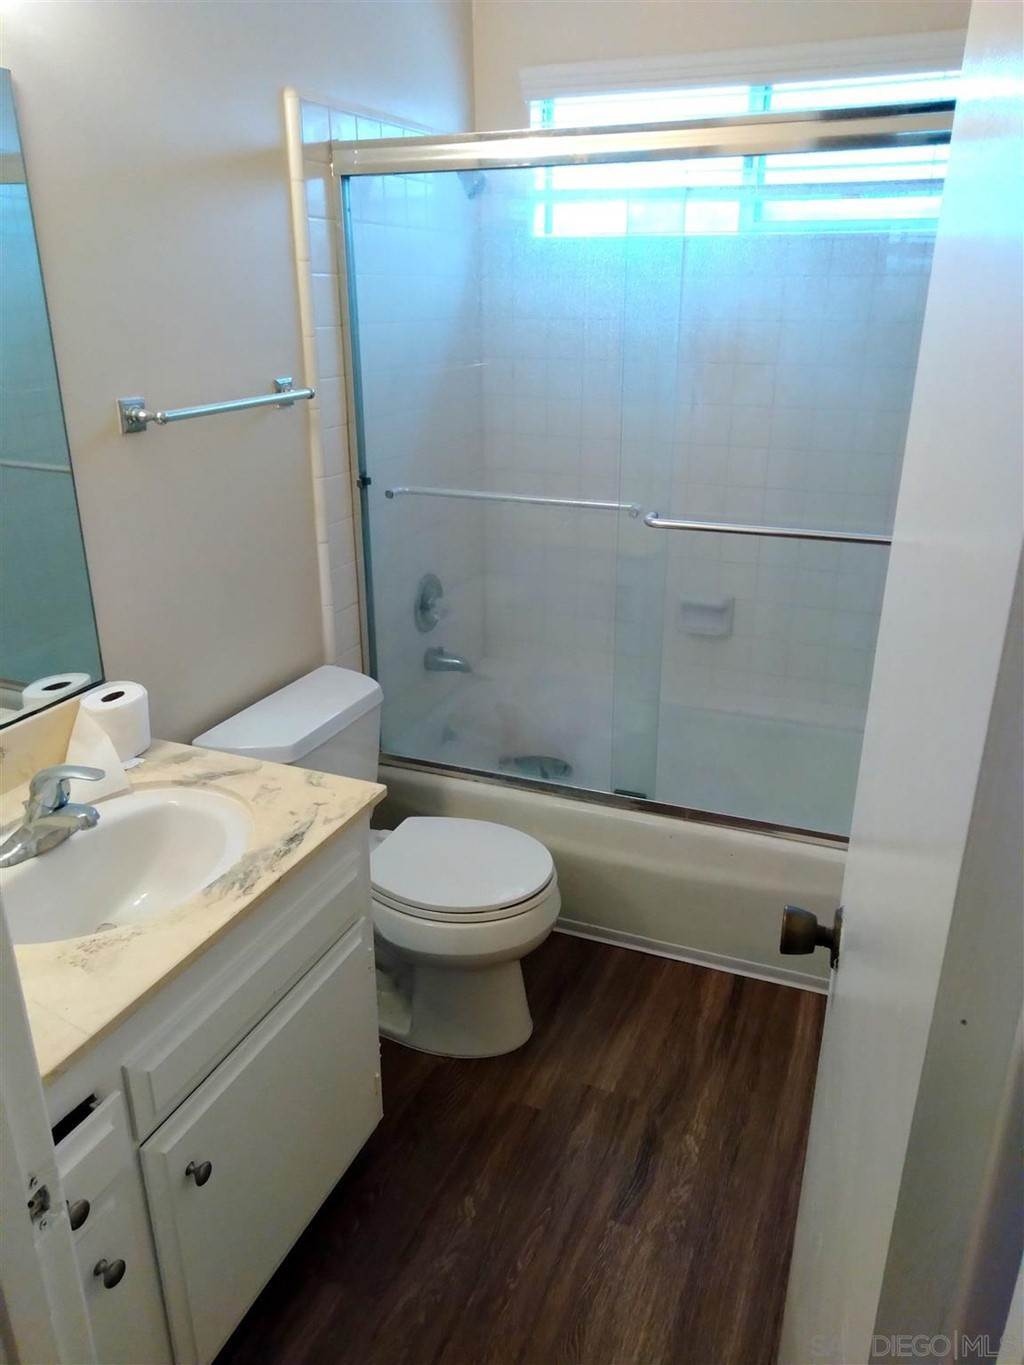 5. Apartments at 4174 Monroe Ave 1 bed 1 bath San Diego, California 92116 United States